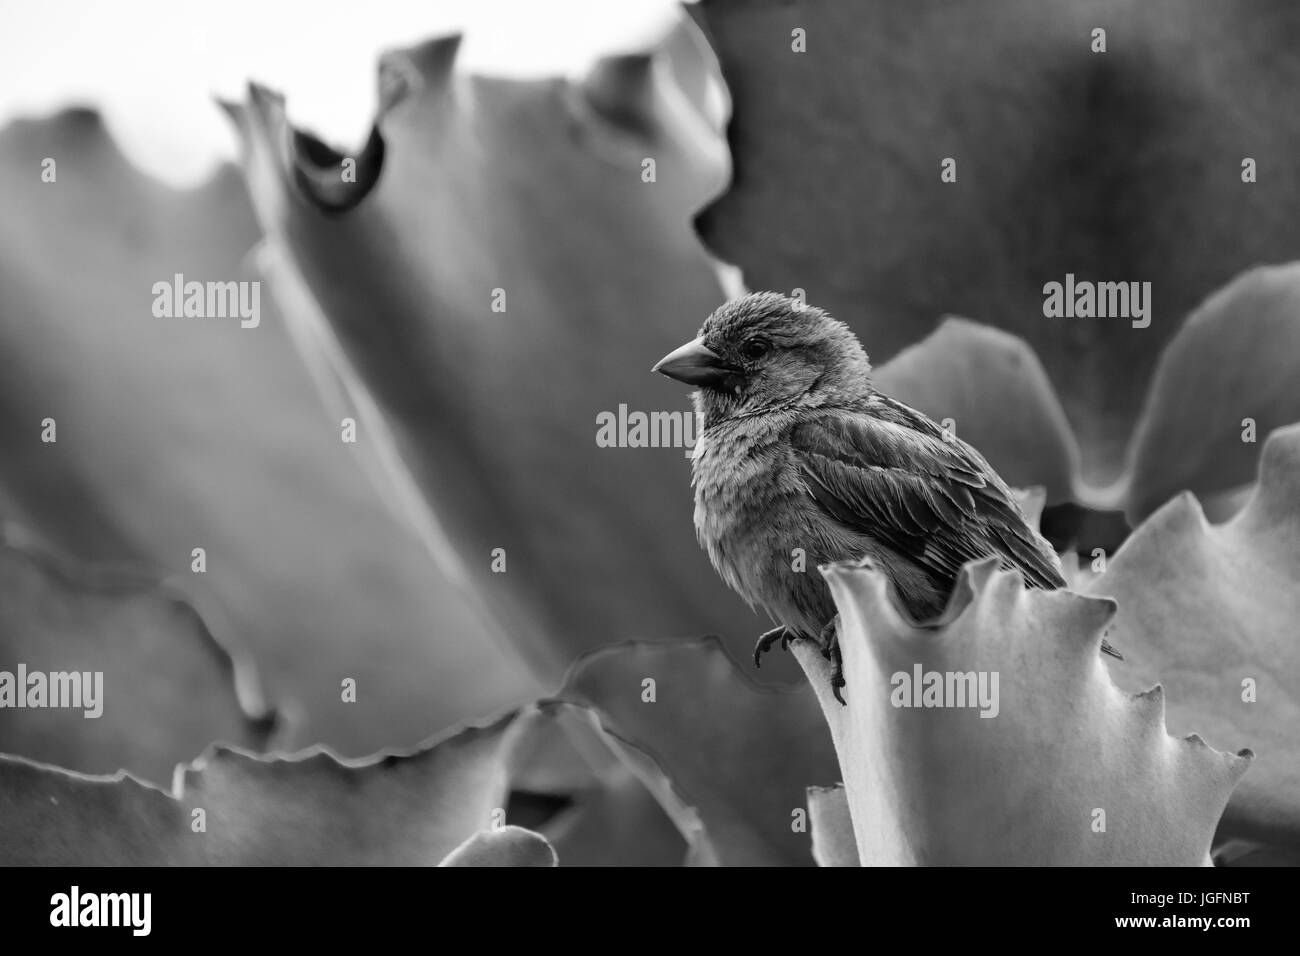 Black and white image of a sparrow perched on succulent vegetation - Stock Image